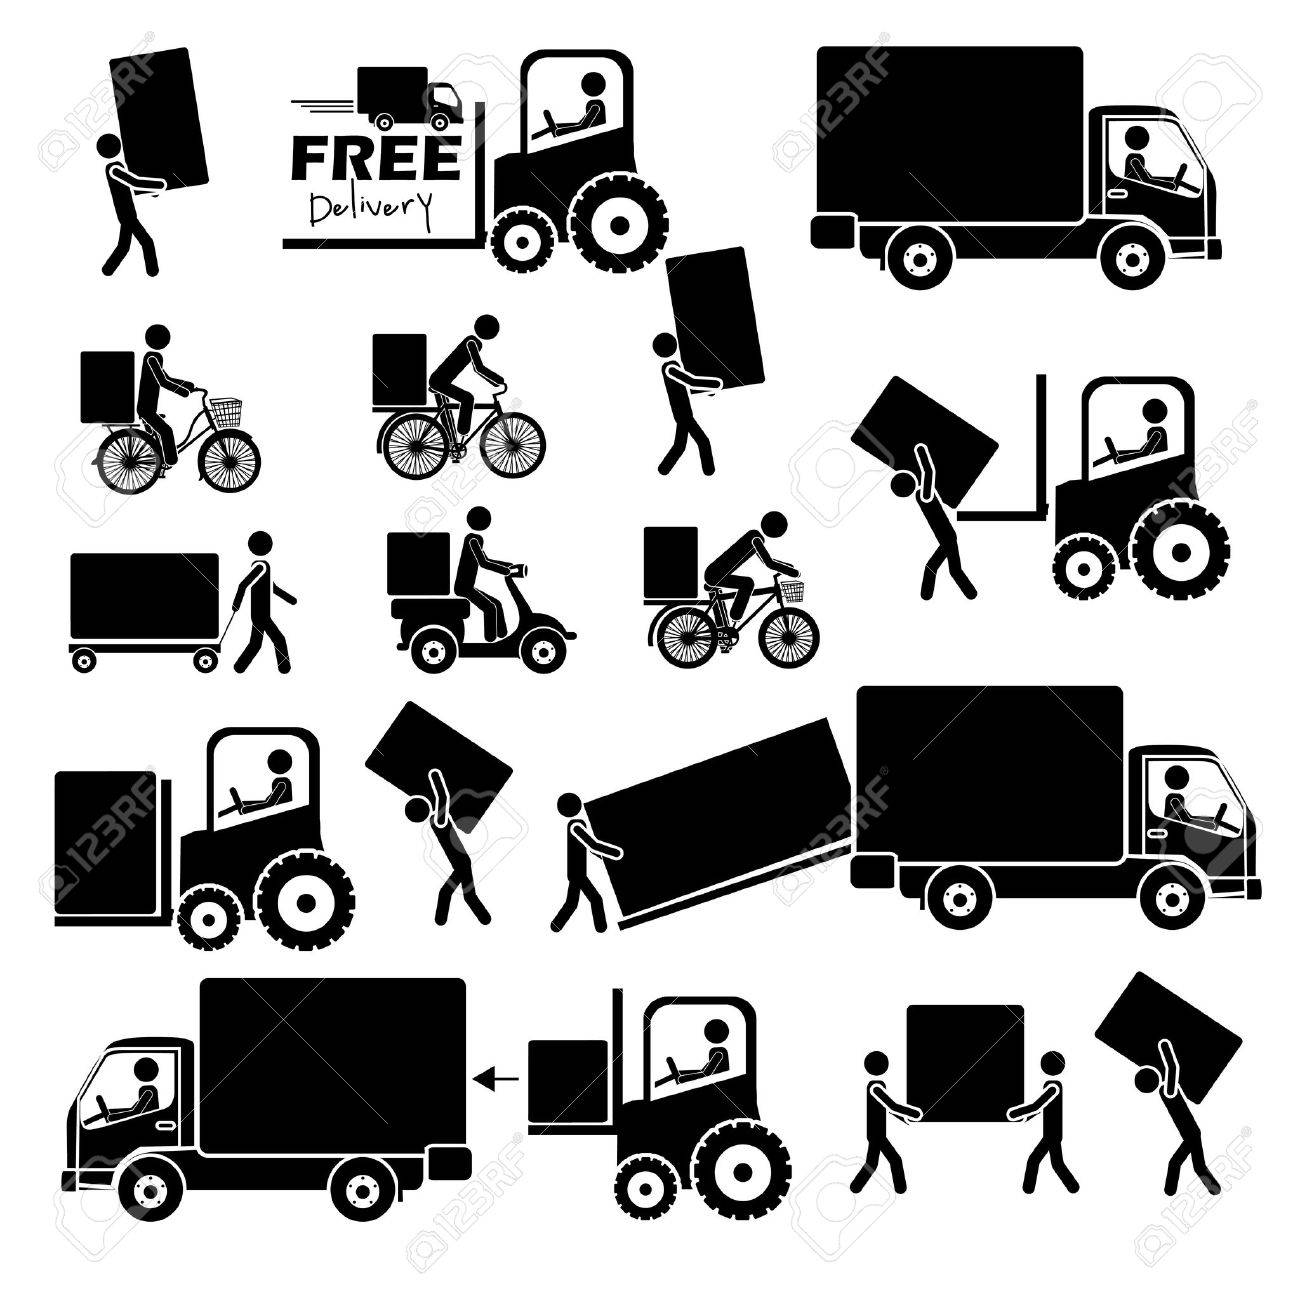 delivery icons over white background vector illustration Stock Vector - 21517891